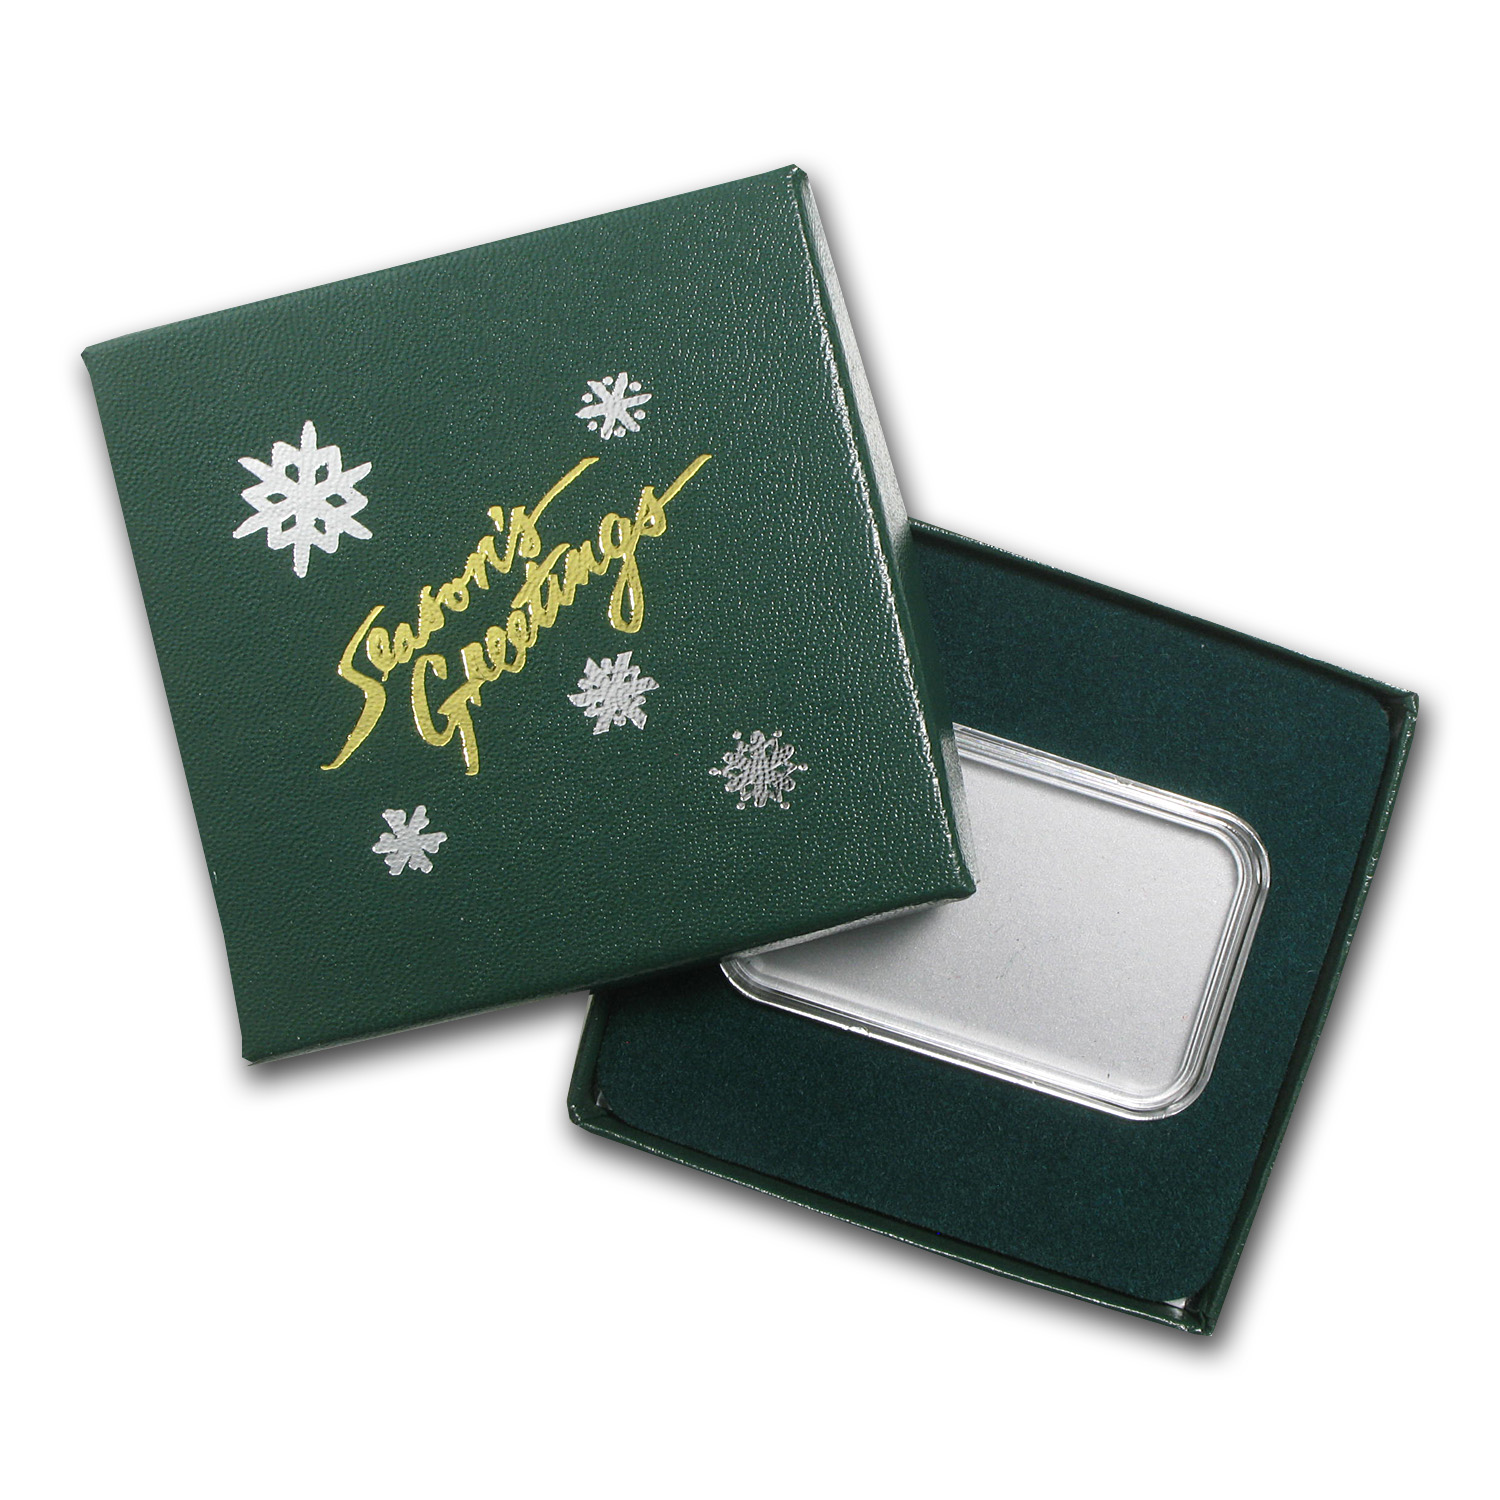 Season's Greetings Green Gift Box for 1 oz Silver Bars